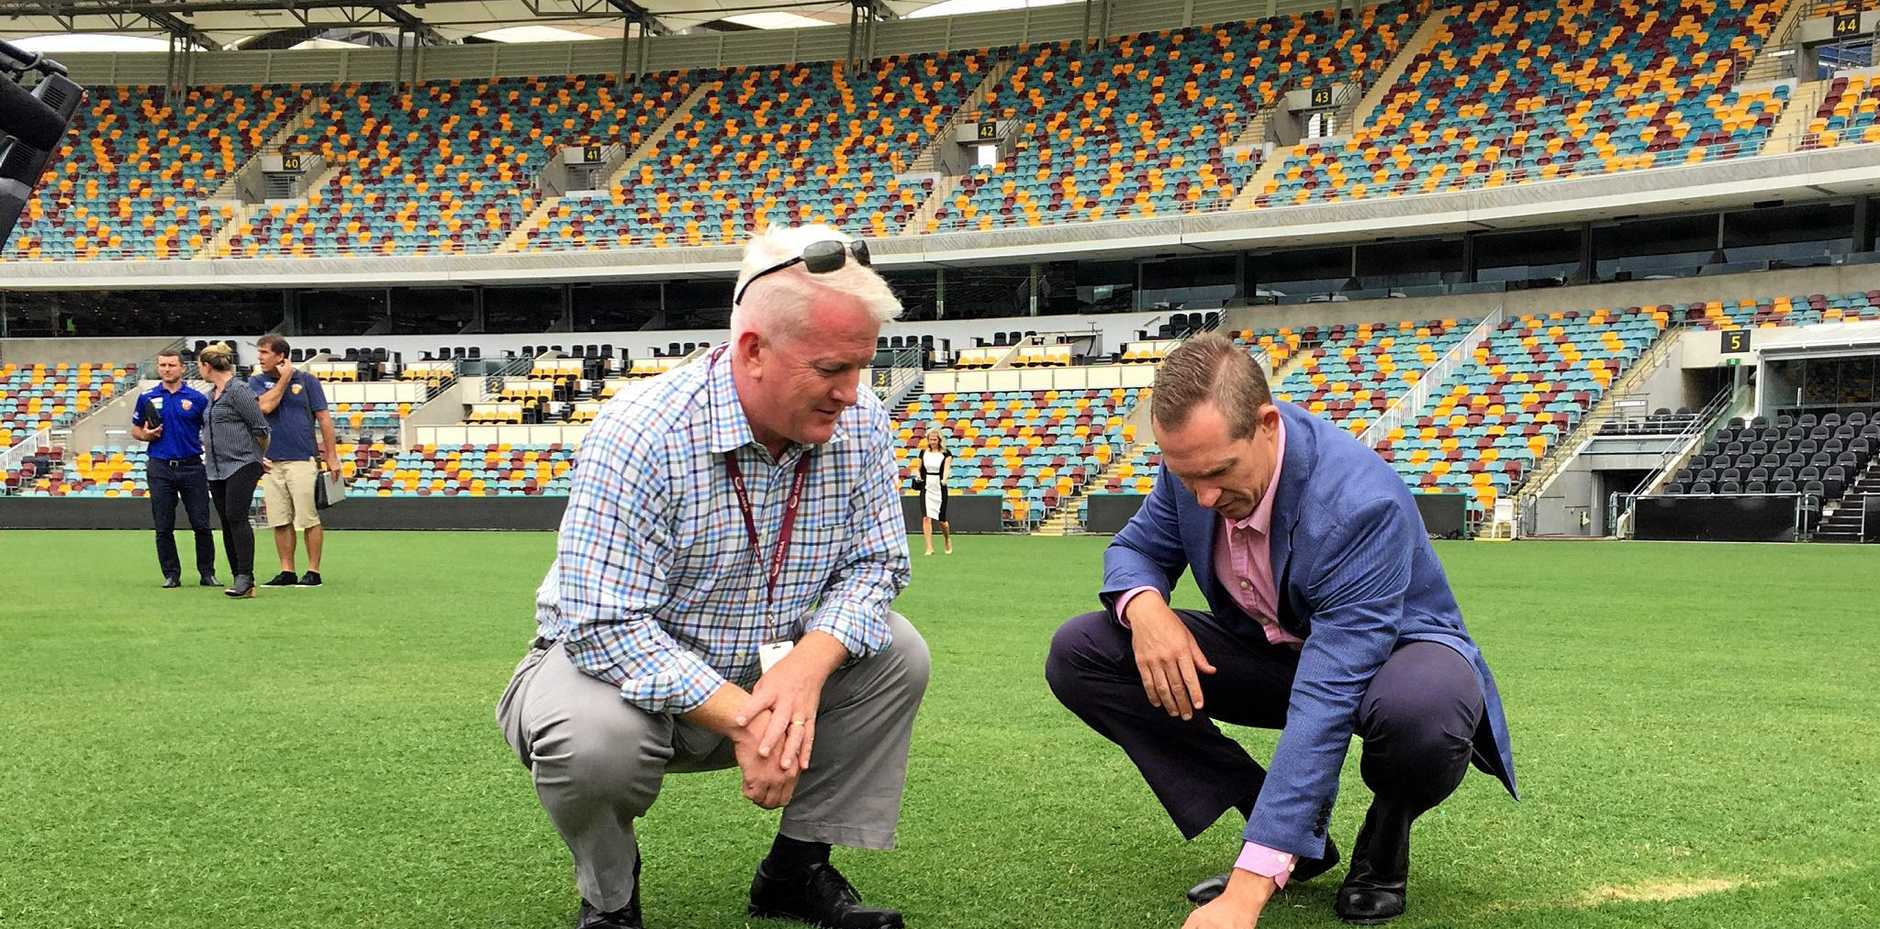 Queensland Sports Minister Mick de Brennii (right) and Gabba venue manager Blair Conaghan inspecting the pitch following the Adele concerts at the Gabba